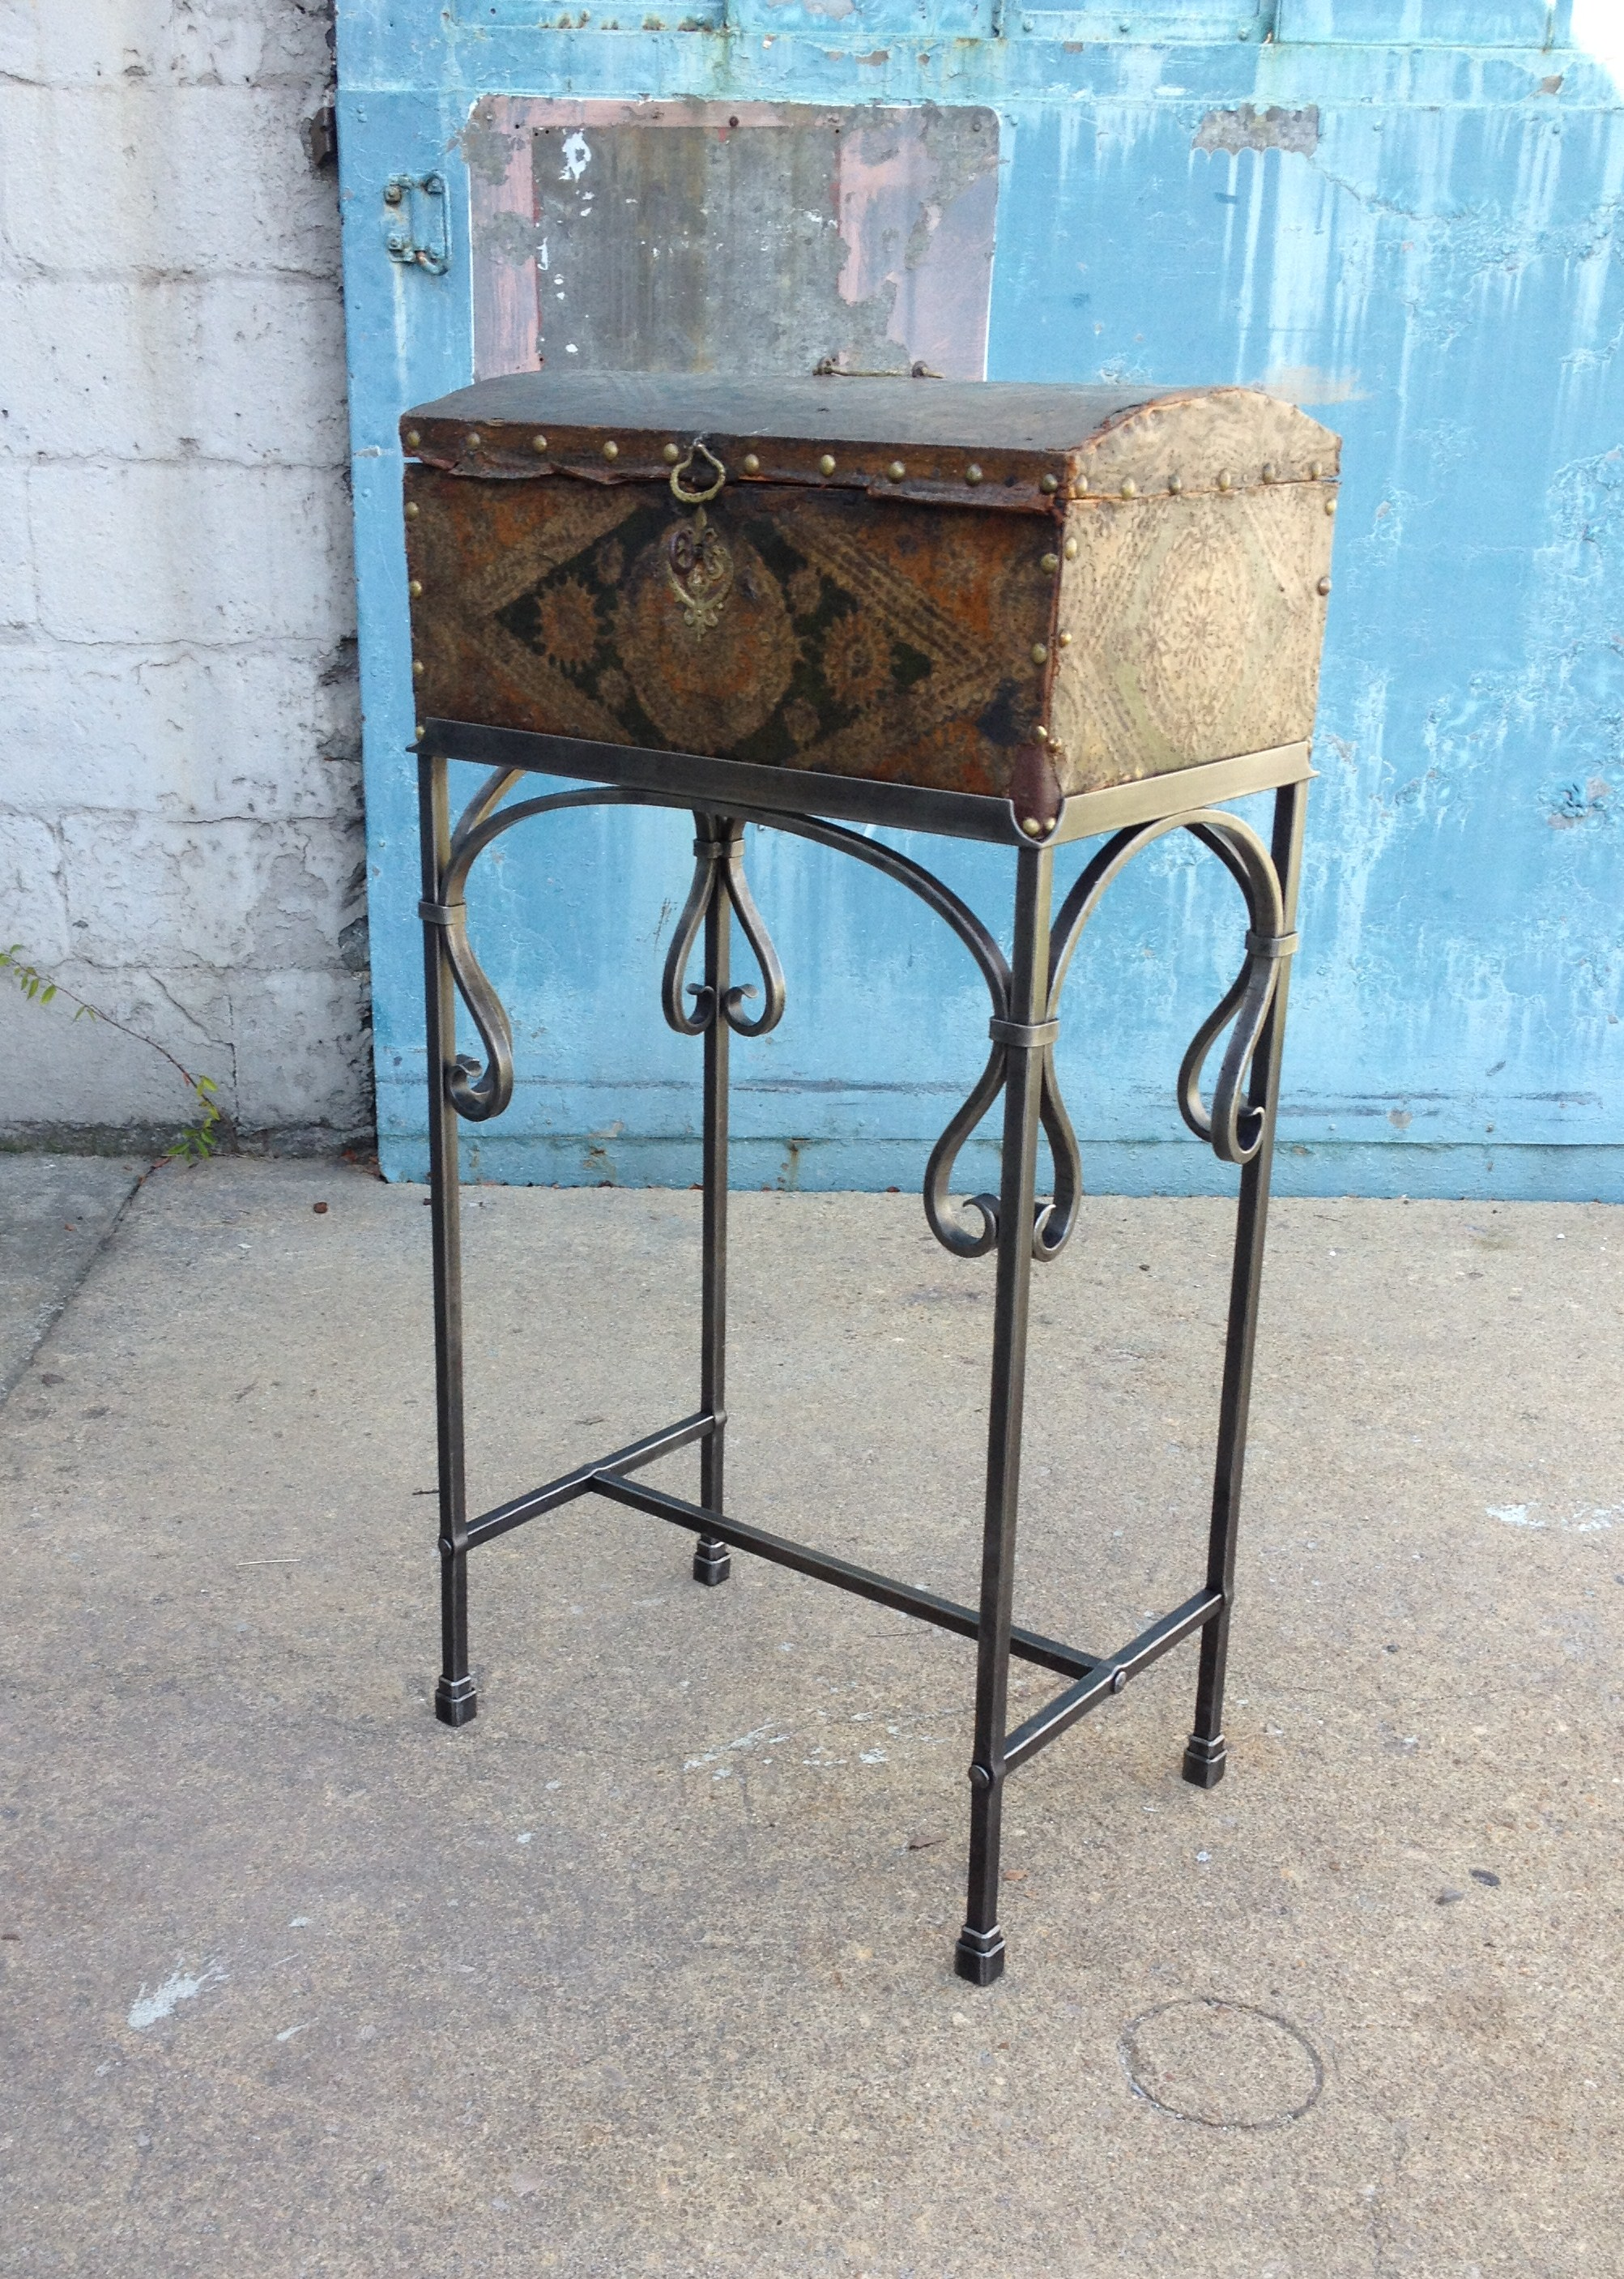 Forged-trunk-stand-PH2013.JPG